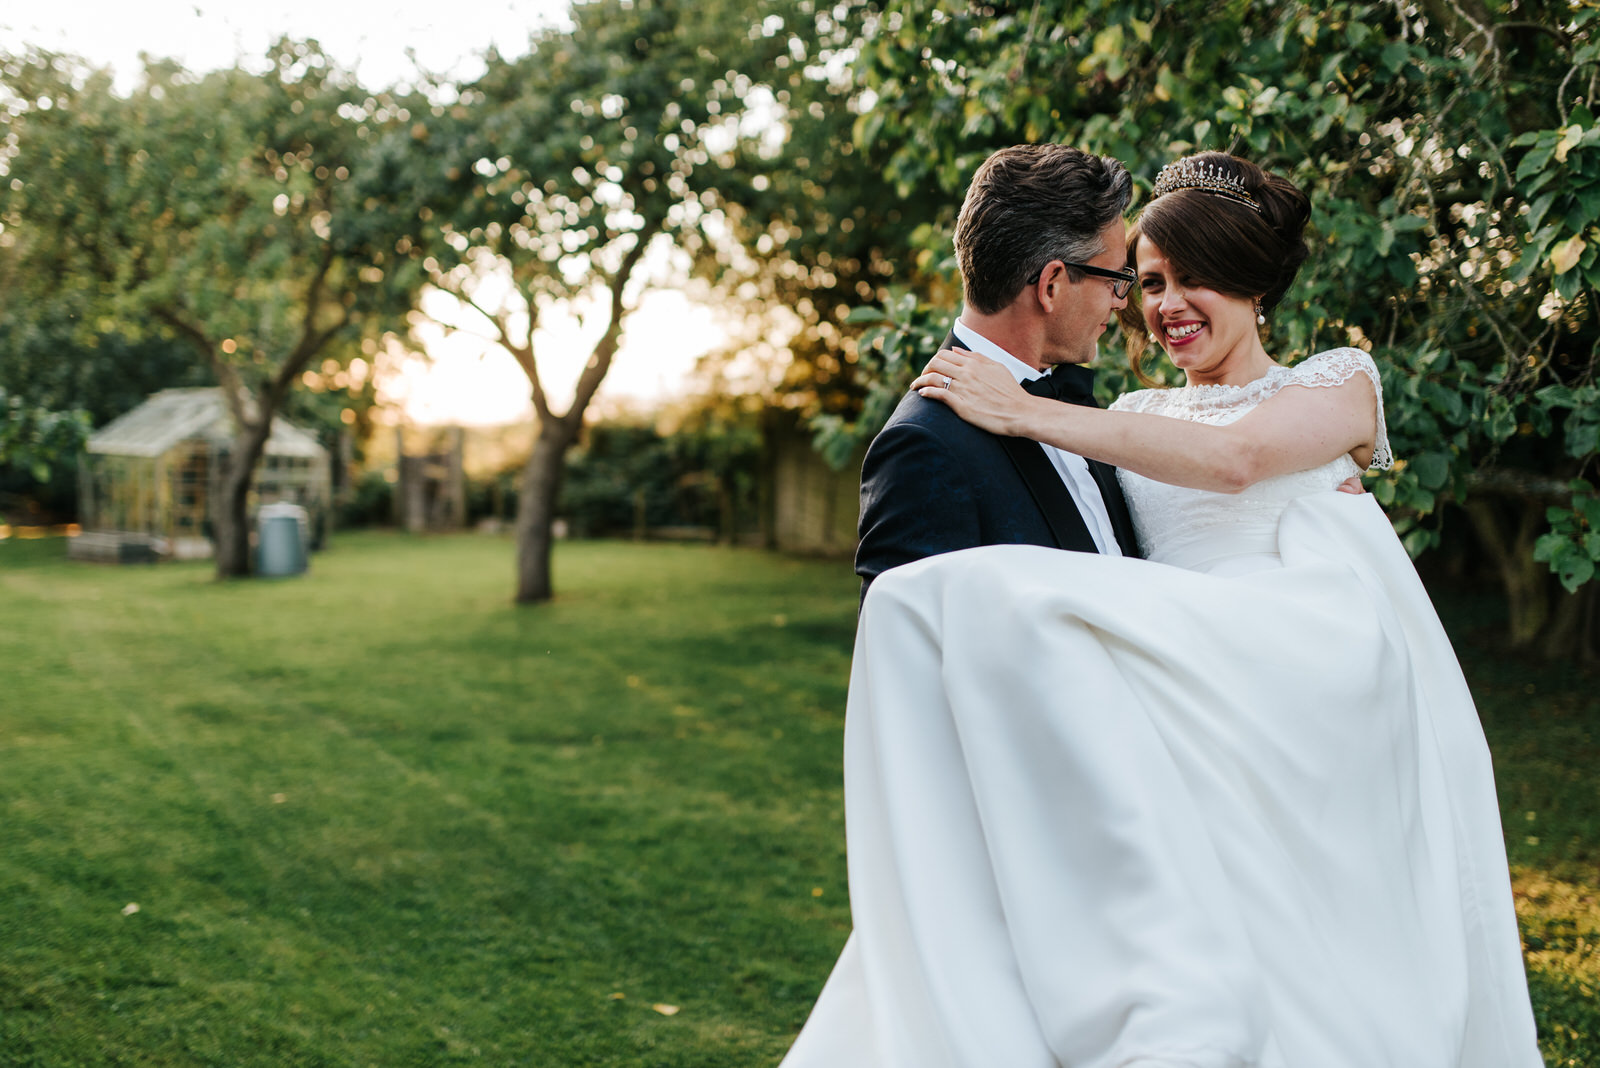 Bride lifted up by Groom as they smile at each other in beautifu